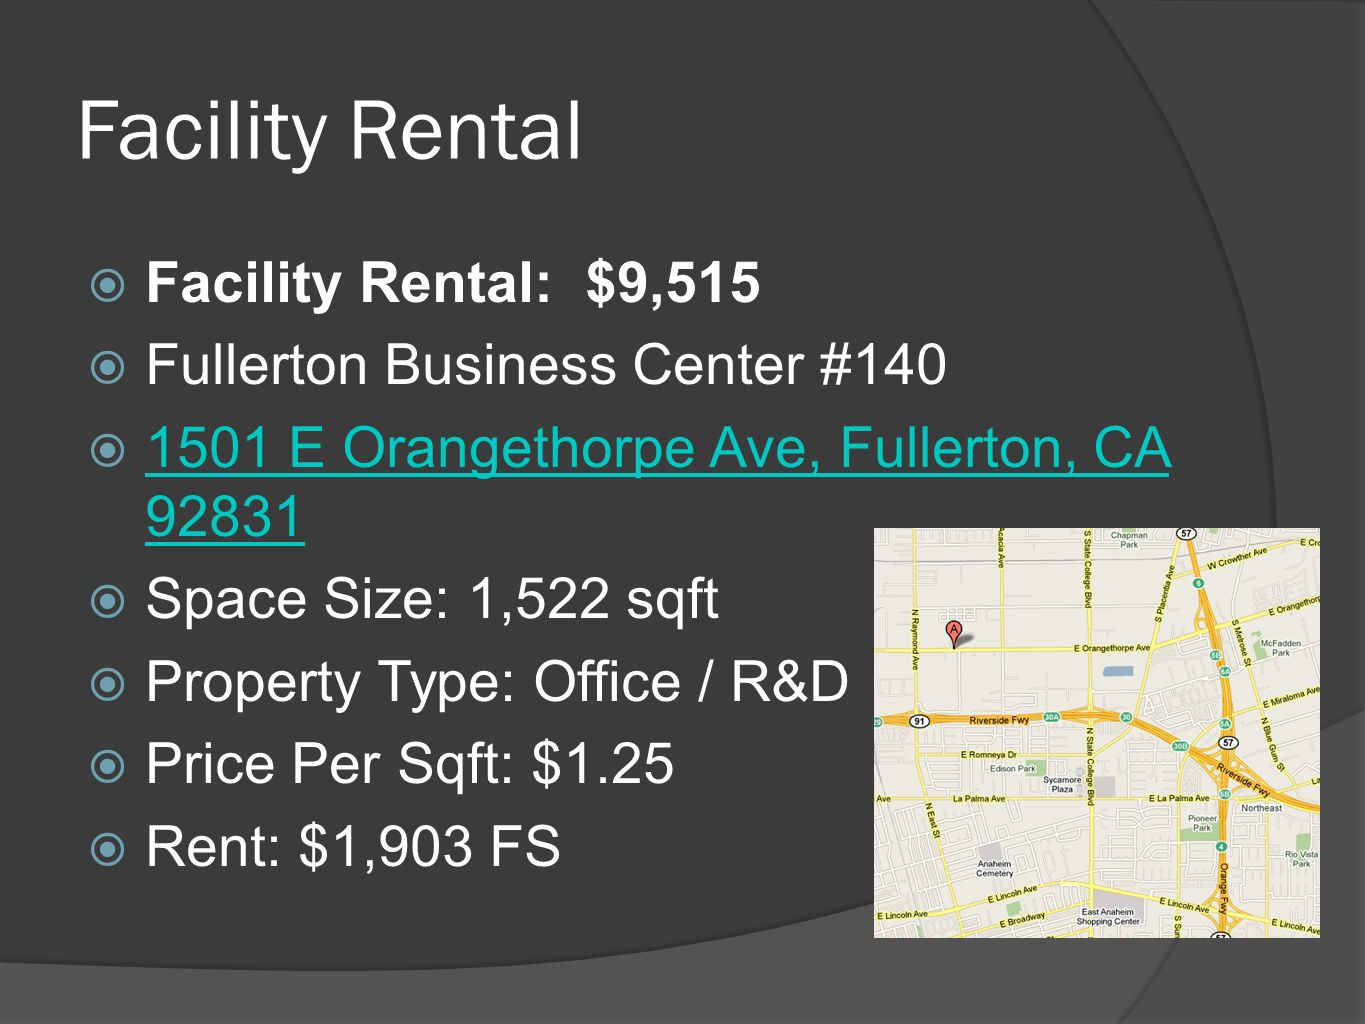 Facility Rental Facility Rental: $9,515 Fullerton Business Center #140